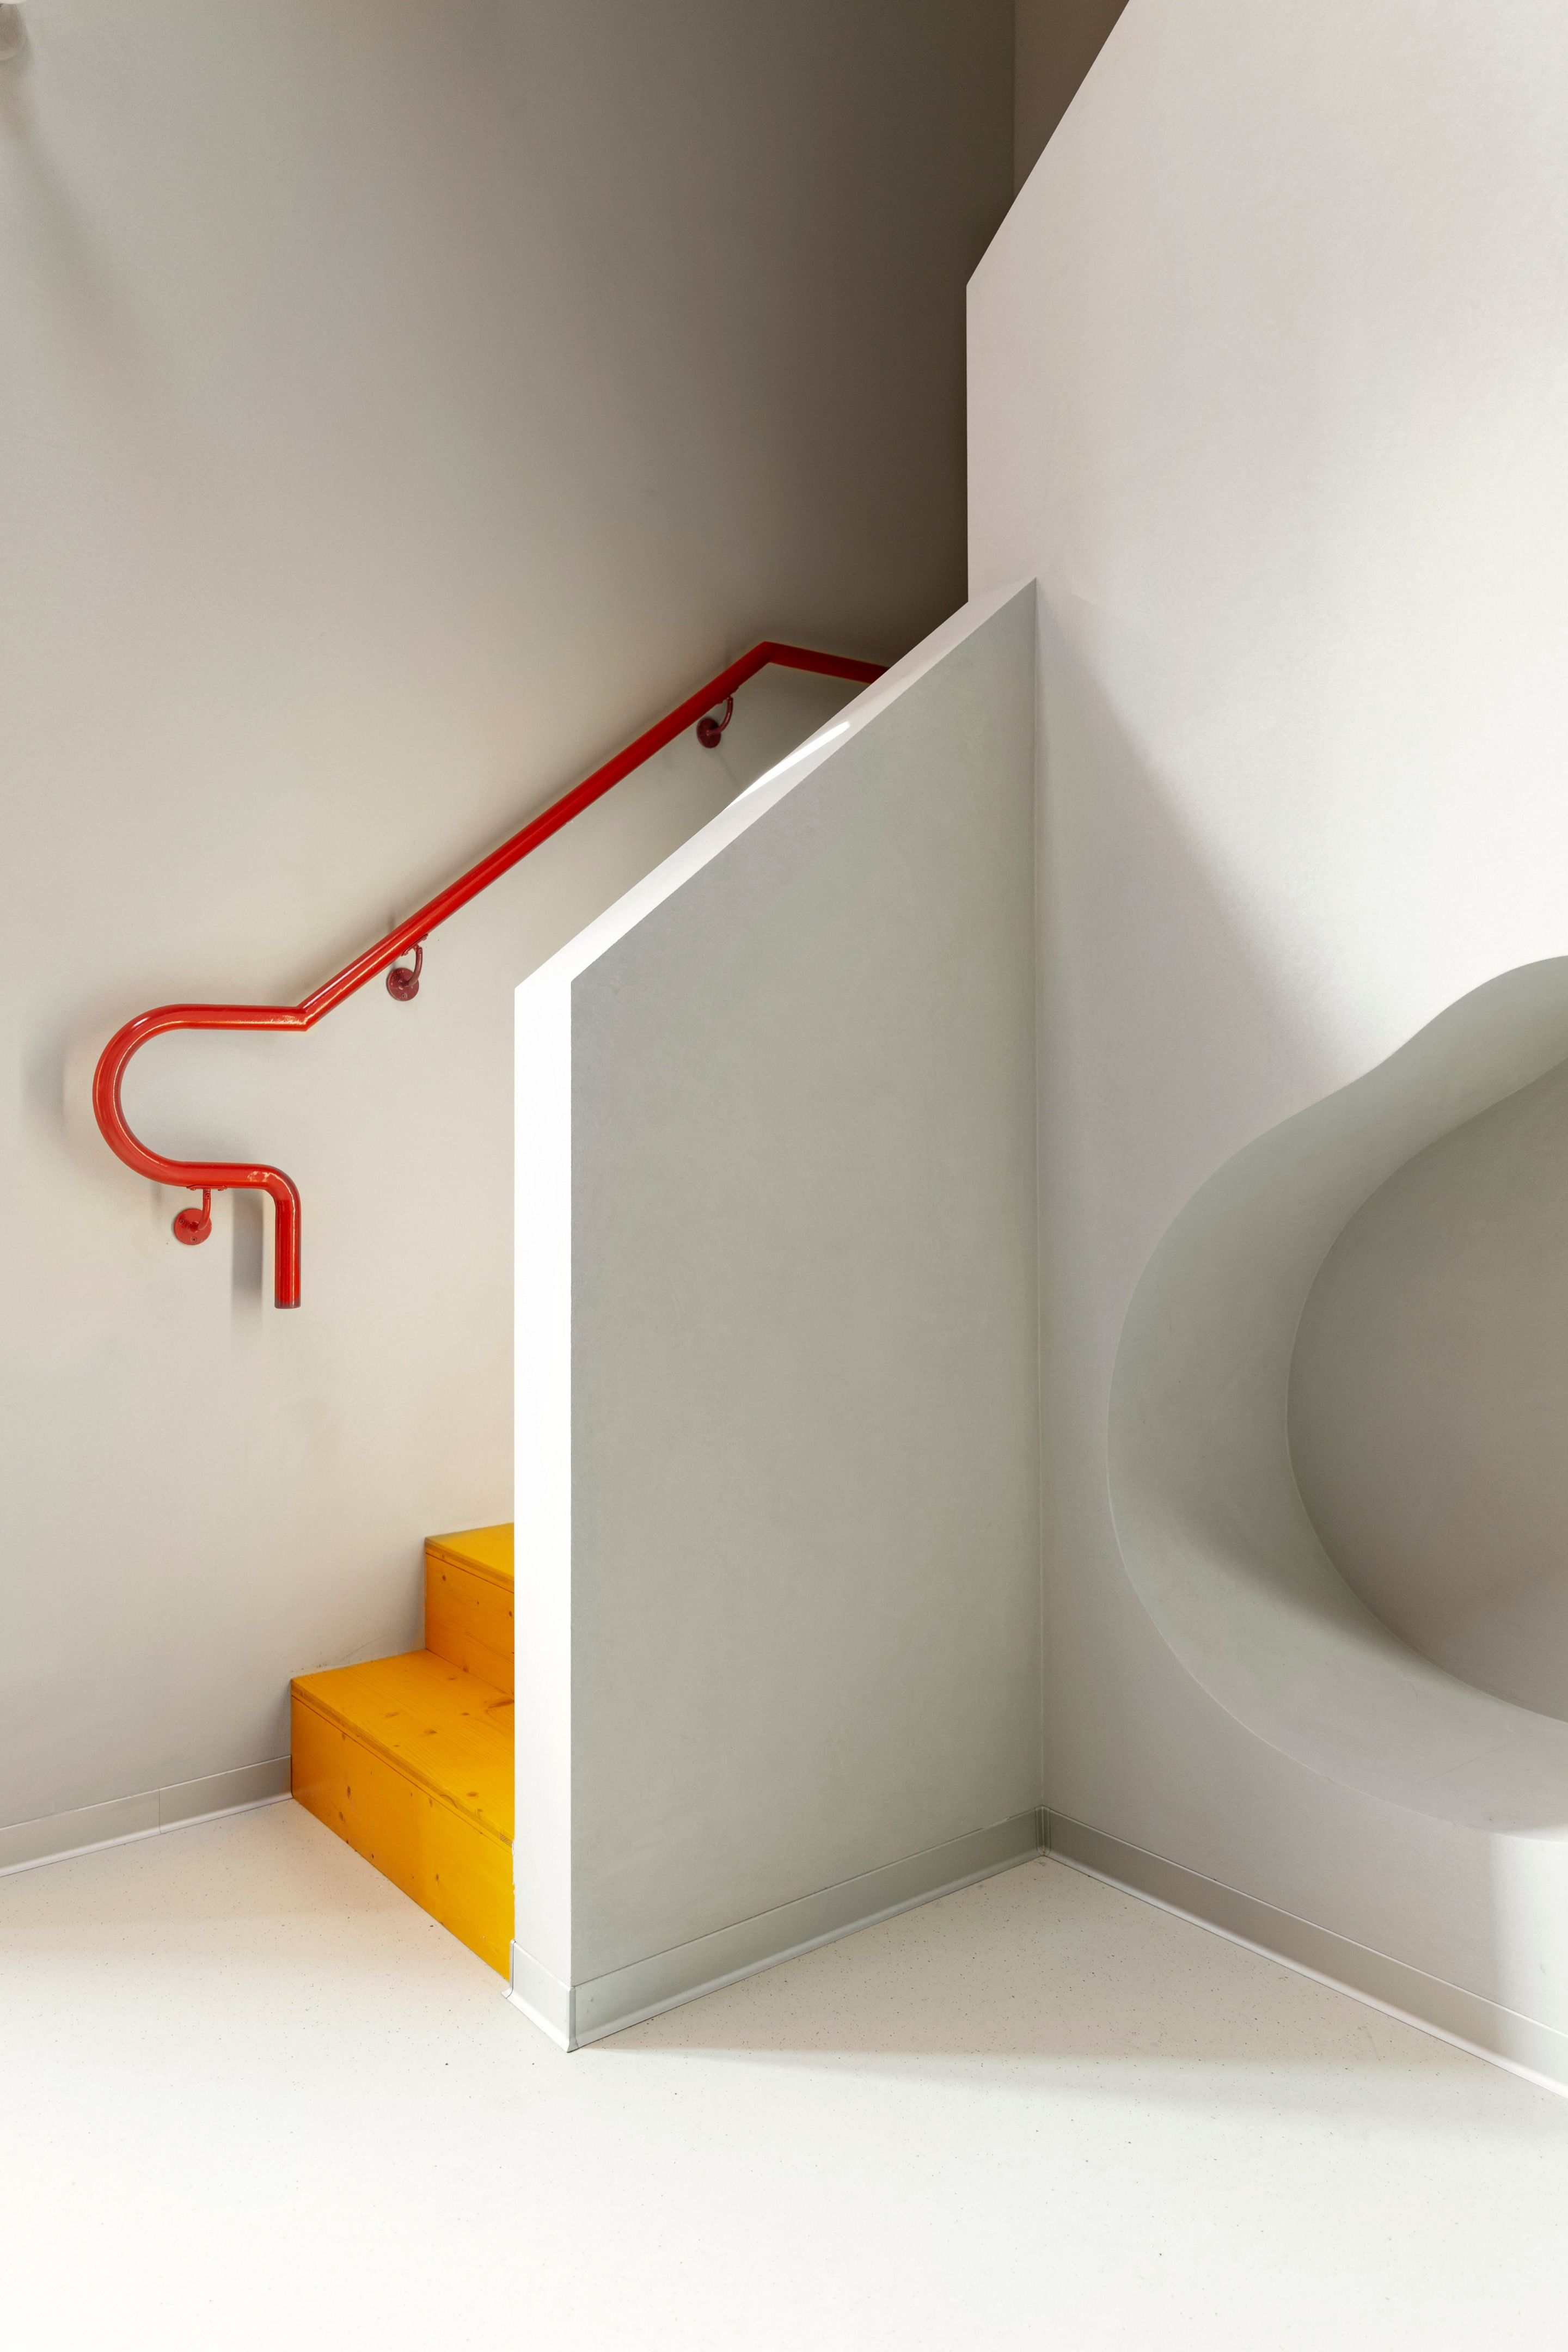 Combo Torino Picture Gallery In 2020 Staircase Inspirational Images Stairs